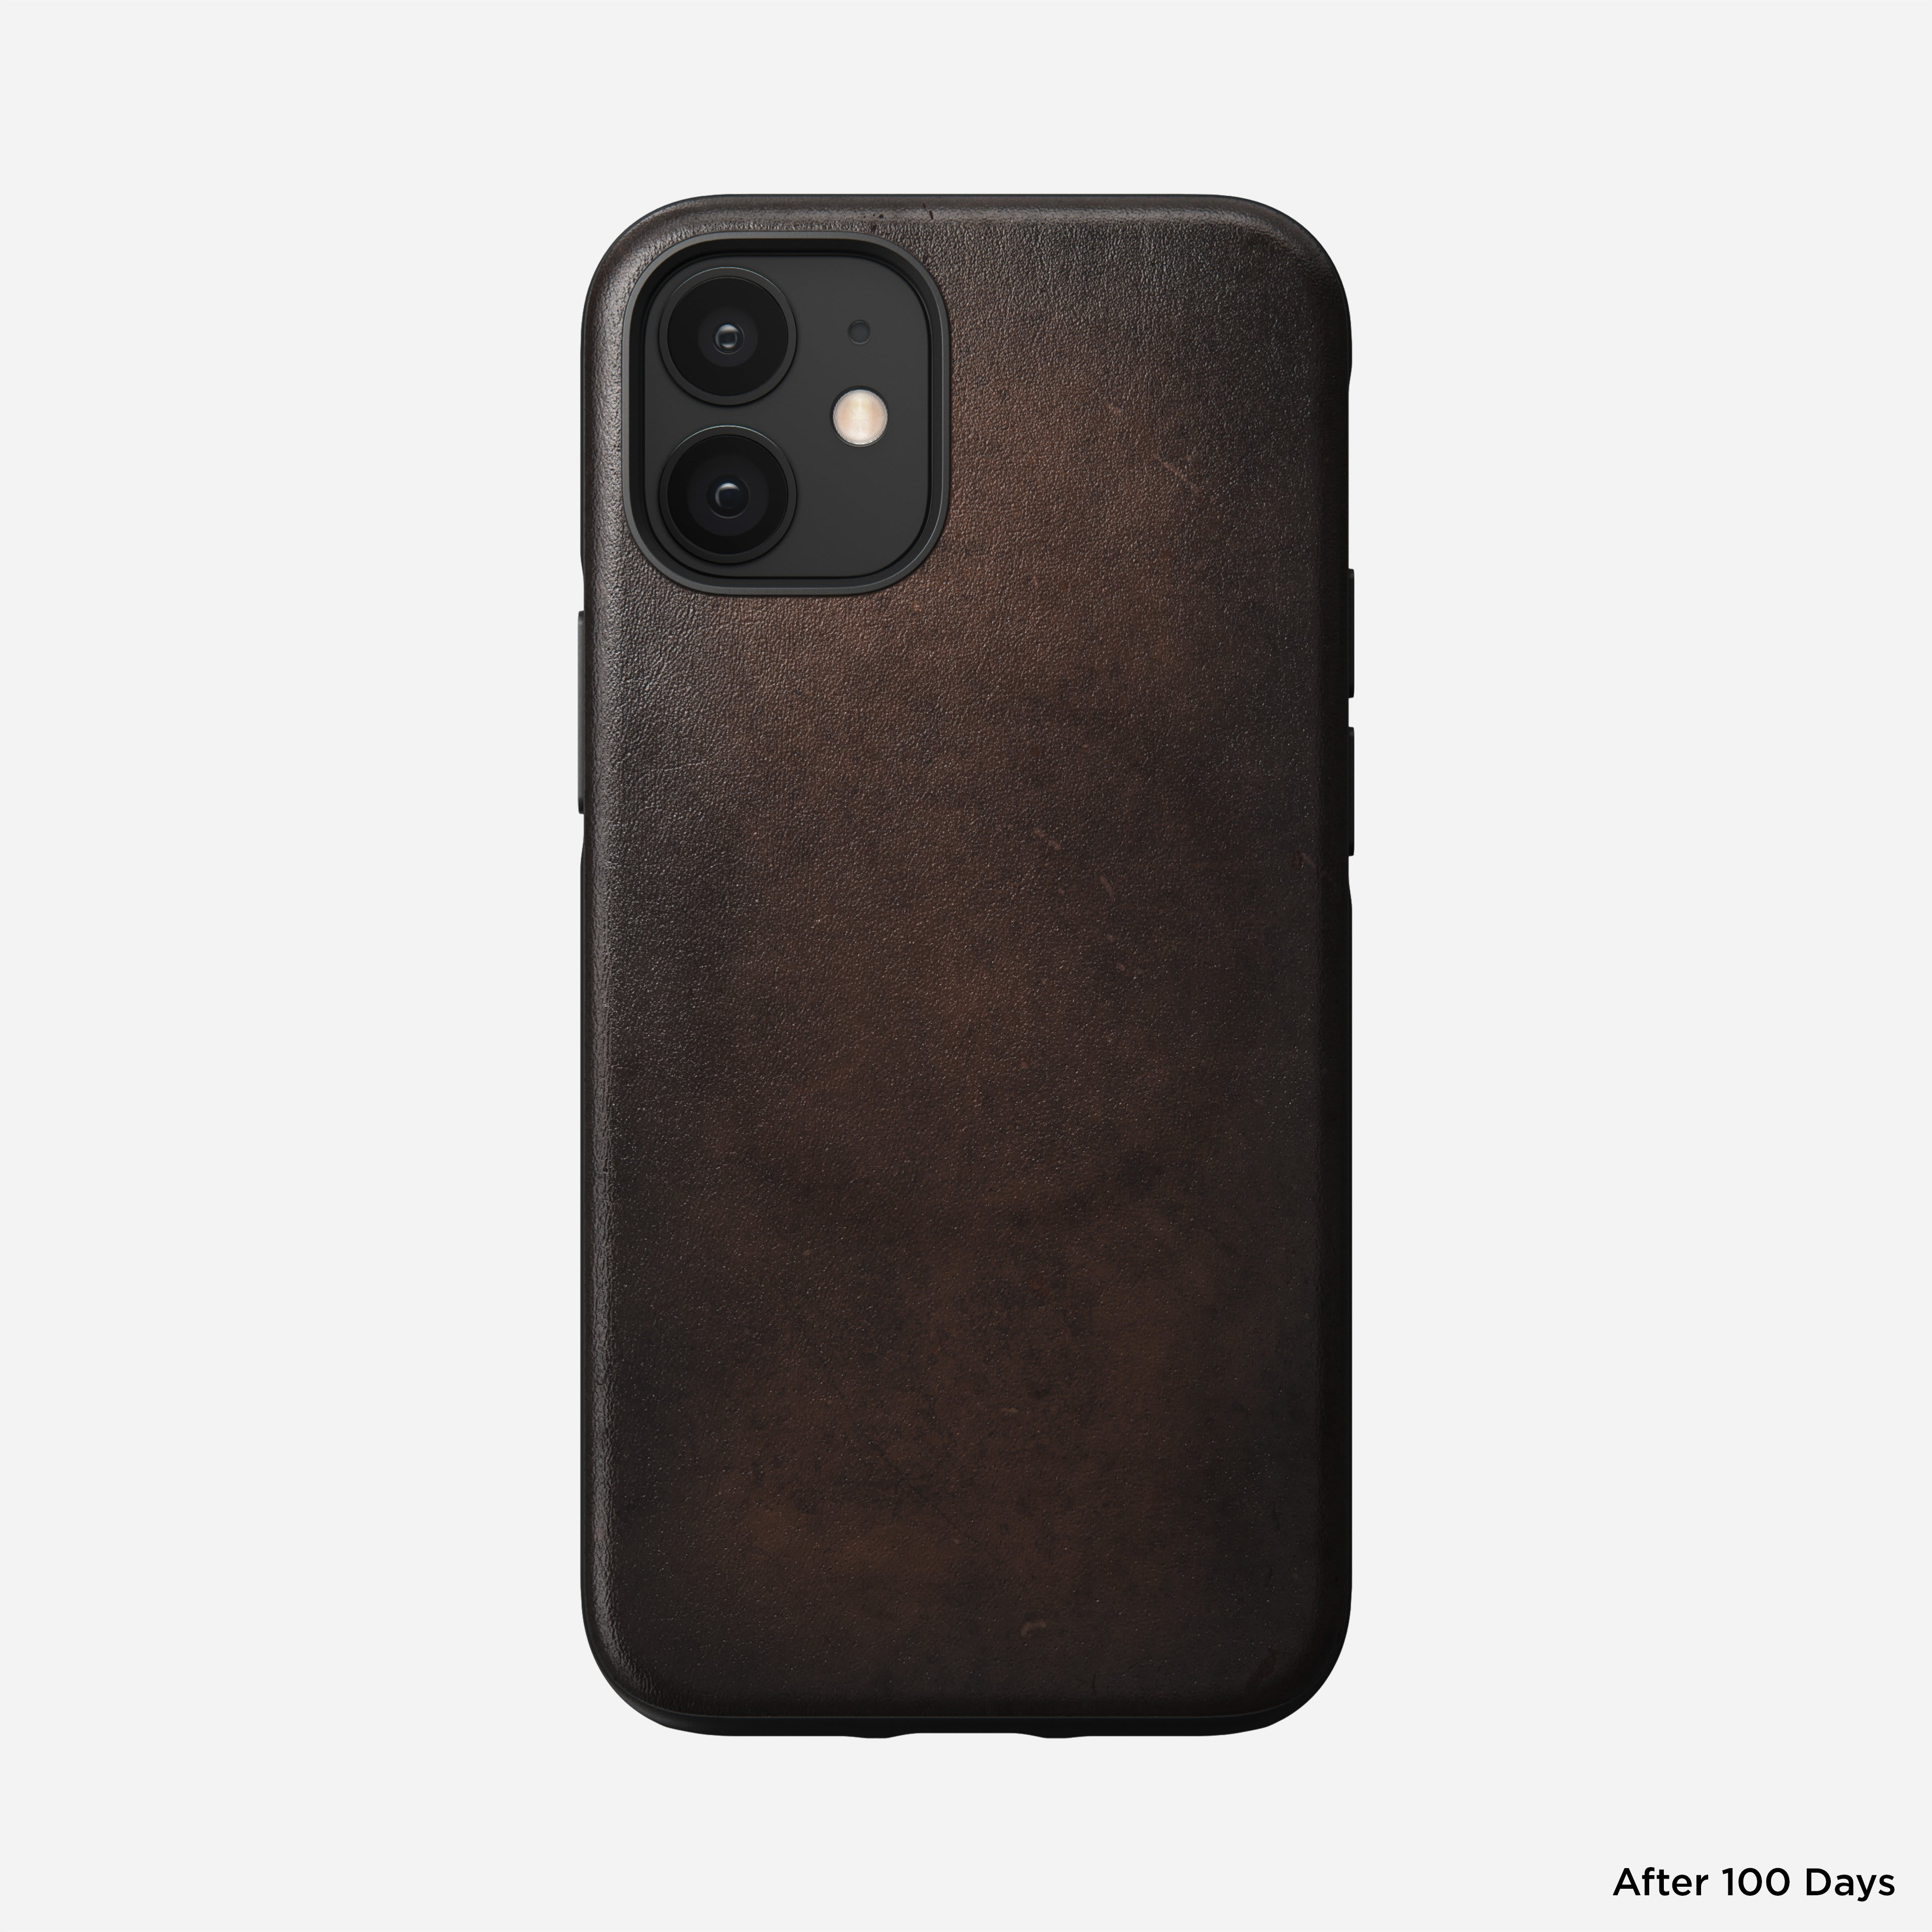 Rugged case magsafe horween leather rustic brown iphone 12 mini